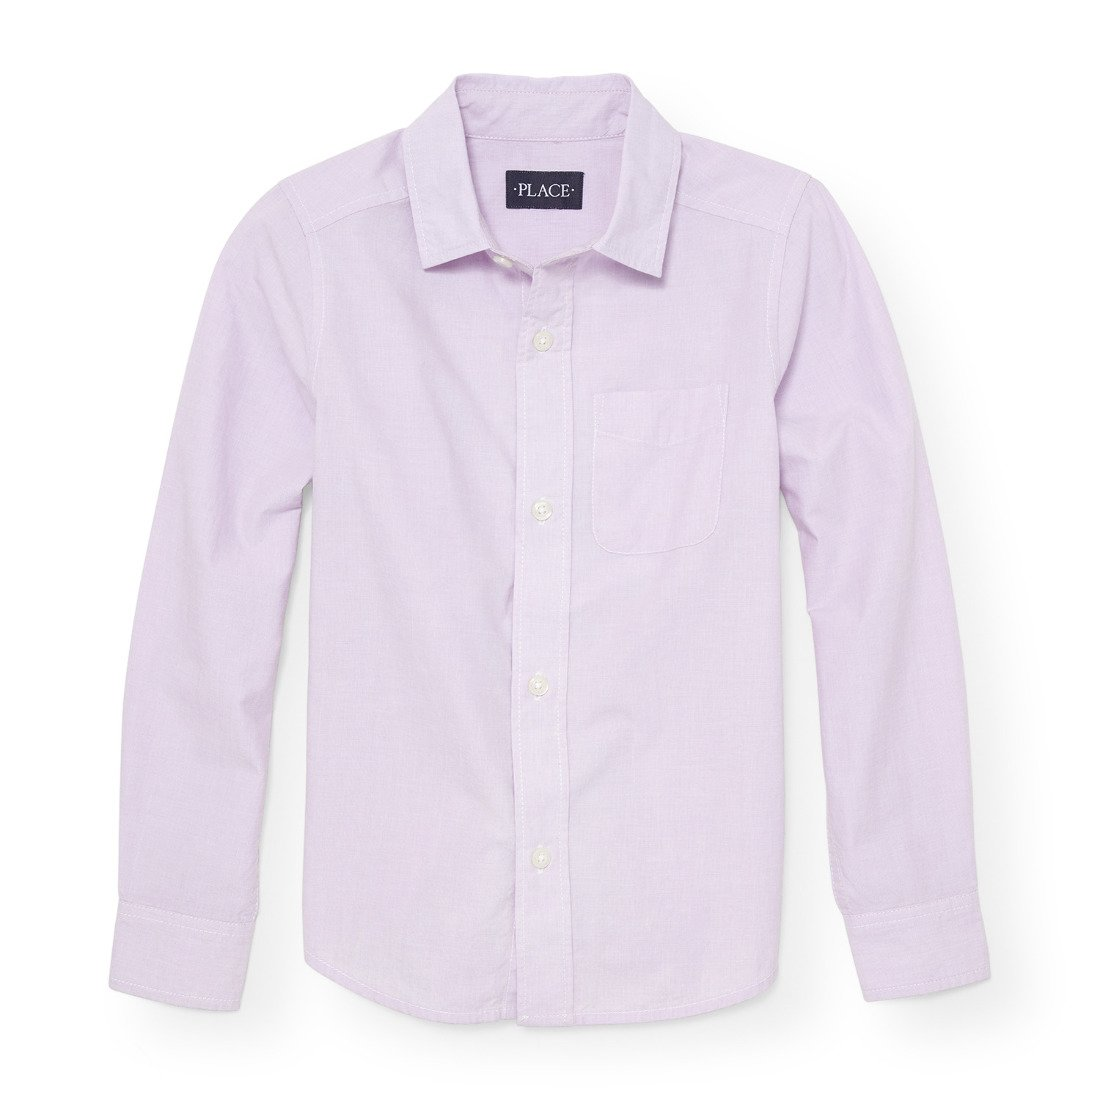 The Children's Place Big Boys' Long Sleeve Woven, Purple Opal 88256, M (7/8)